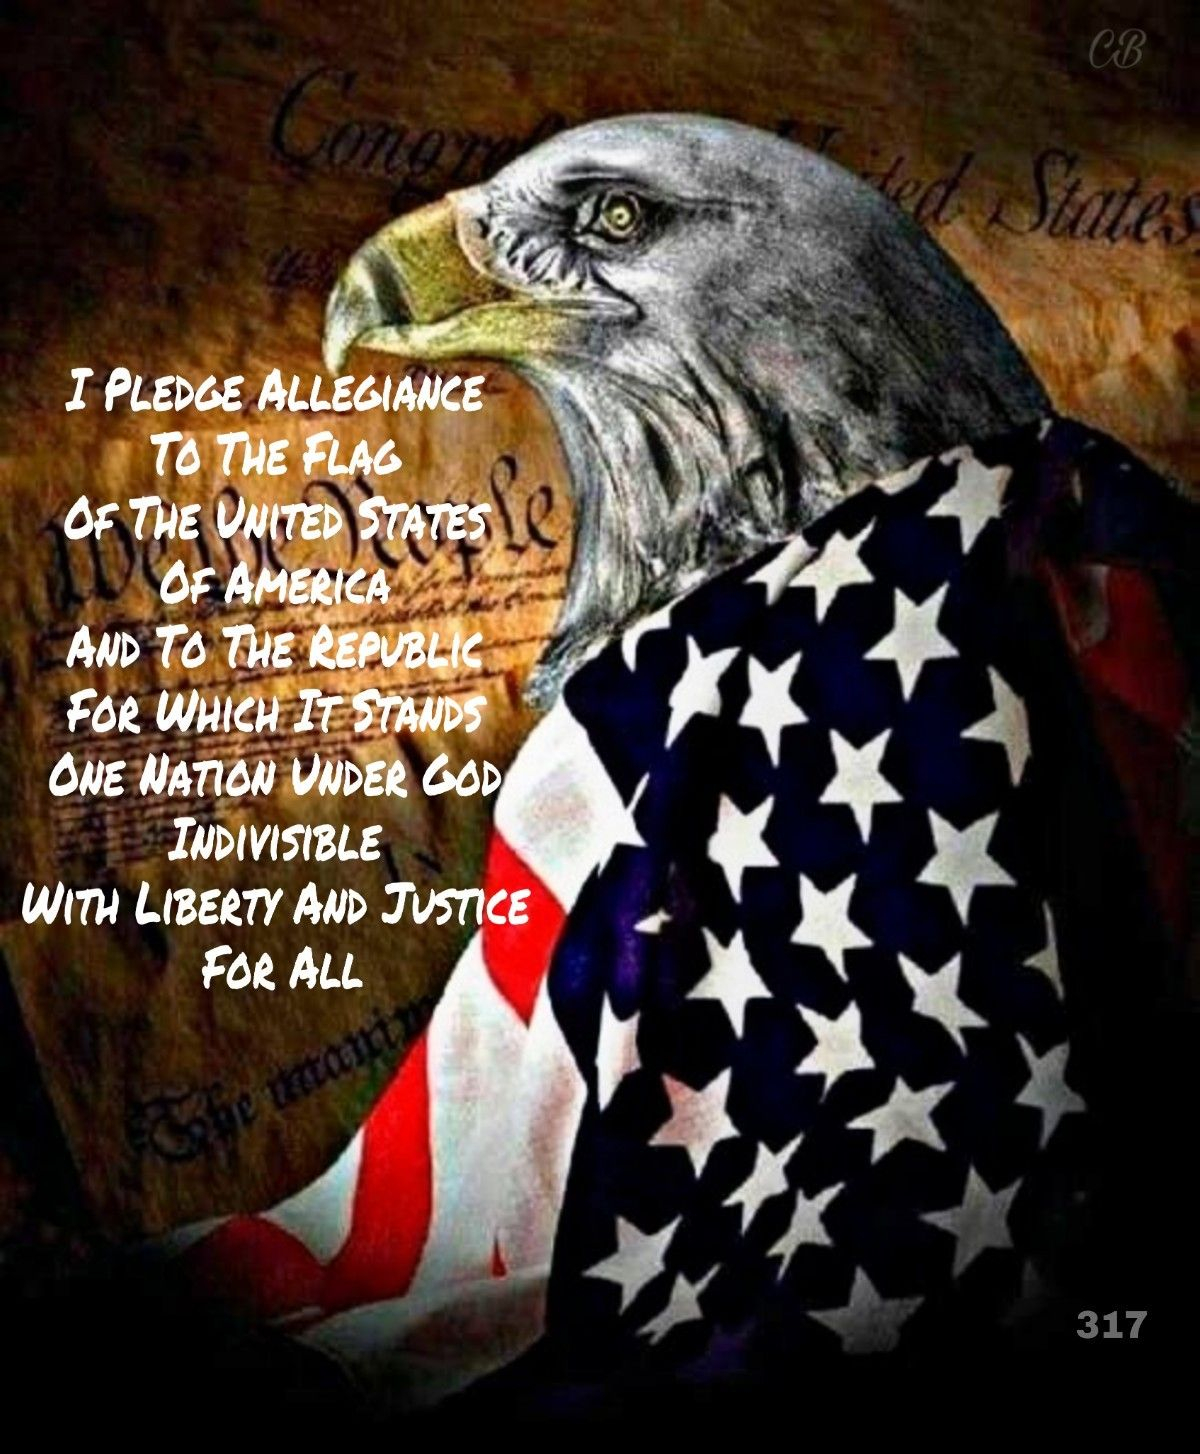 Pin By Chris Binder On Pledge Of Allegiance